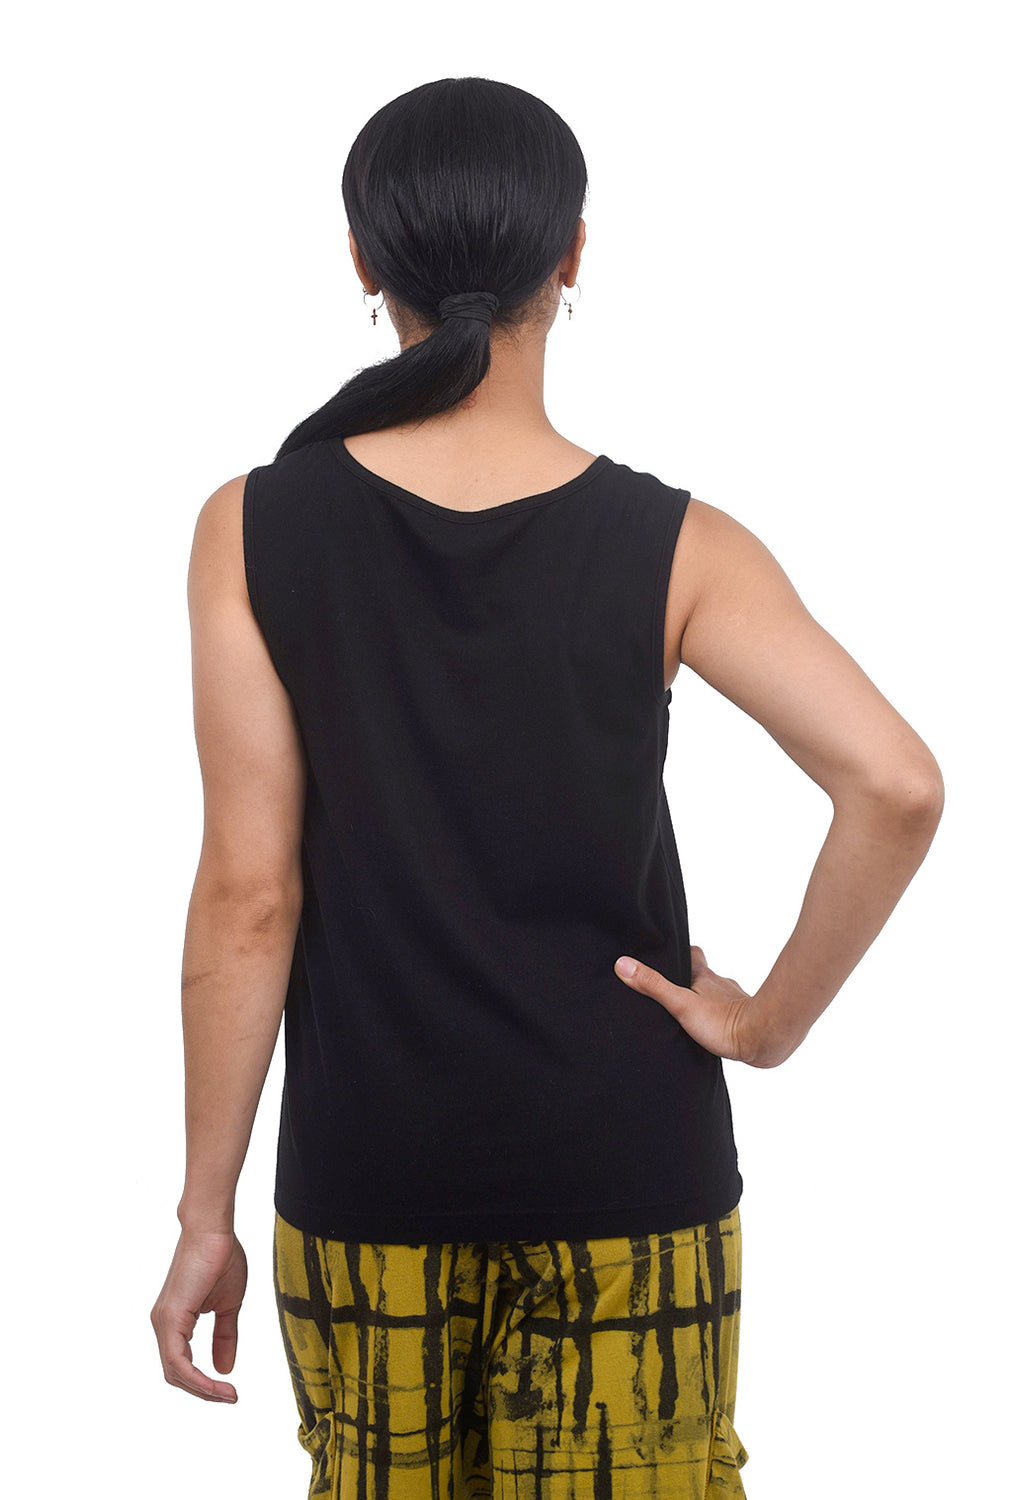 Fenini Cotton Basic Tank, Black